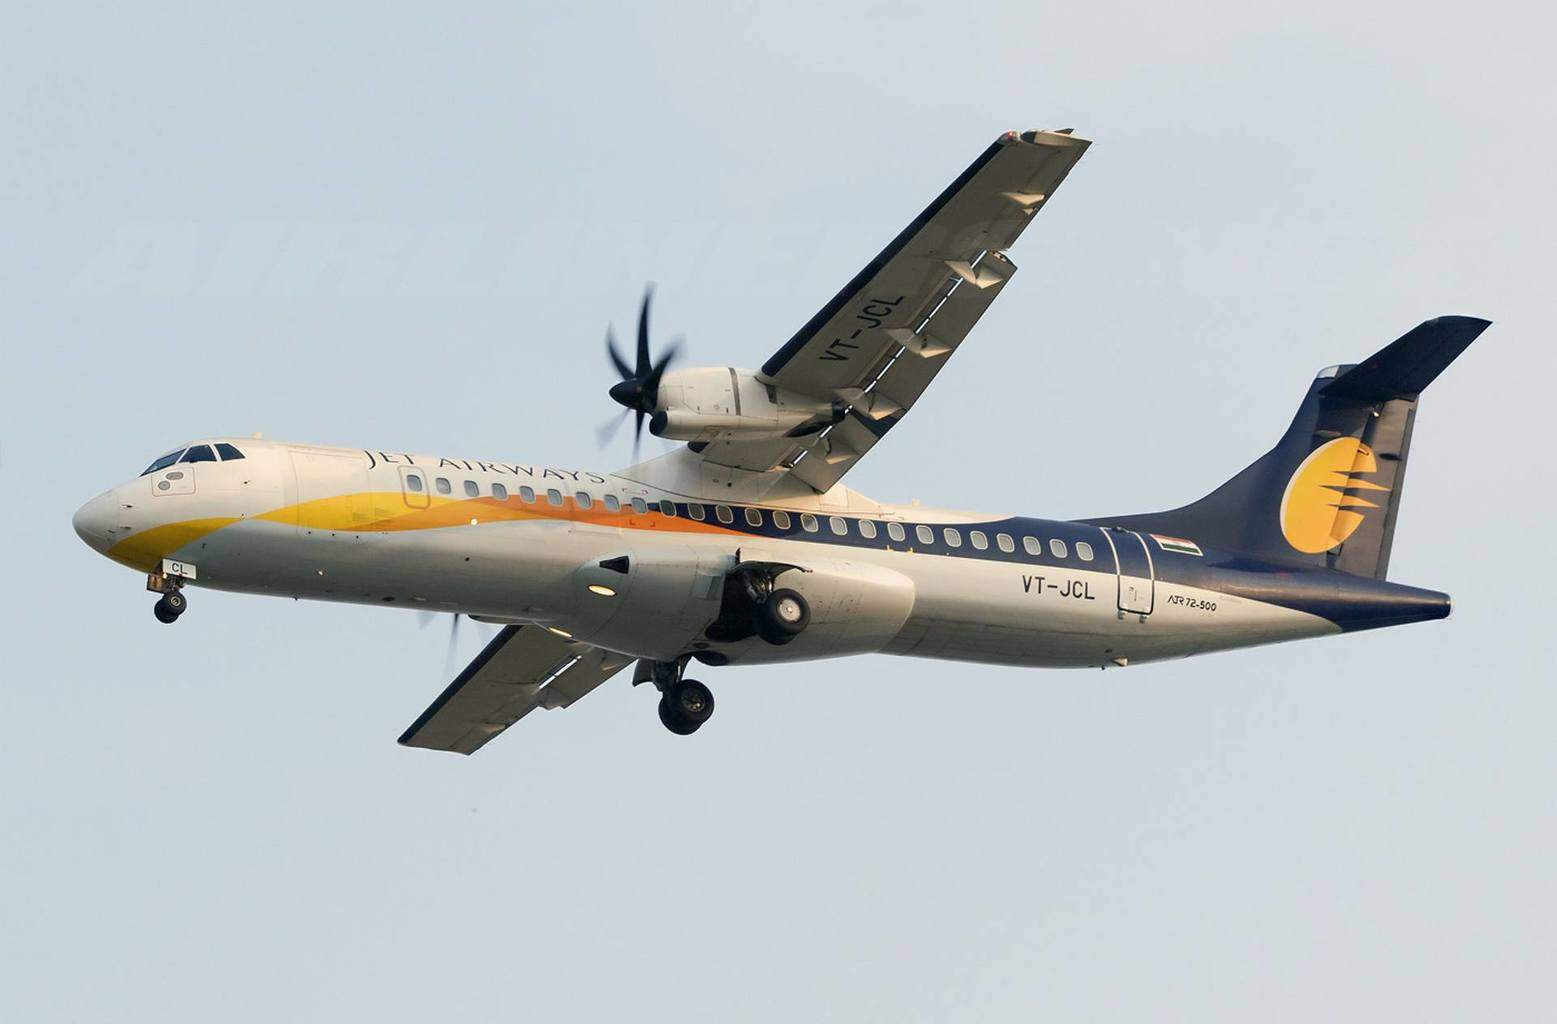 Jet Airways ATR-72-500 has engine fire and smoke in the cabin